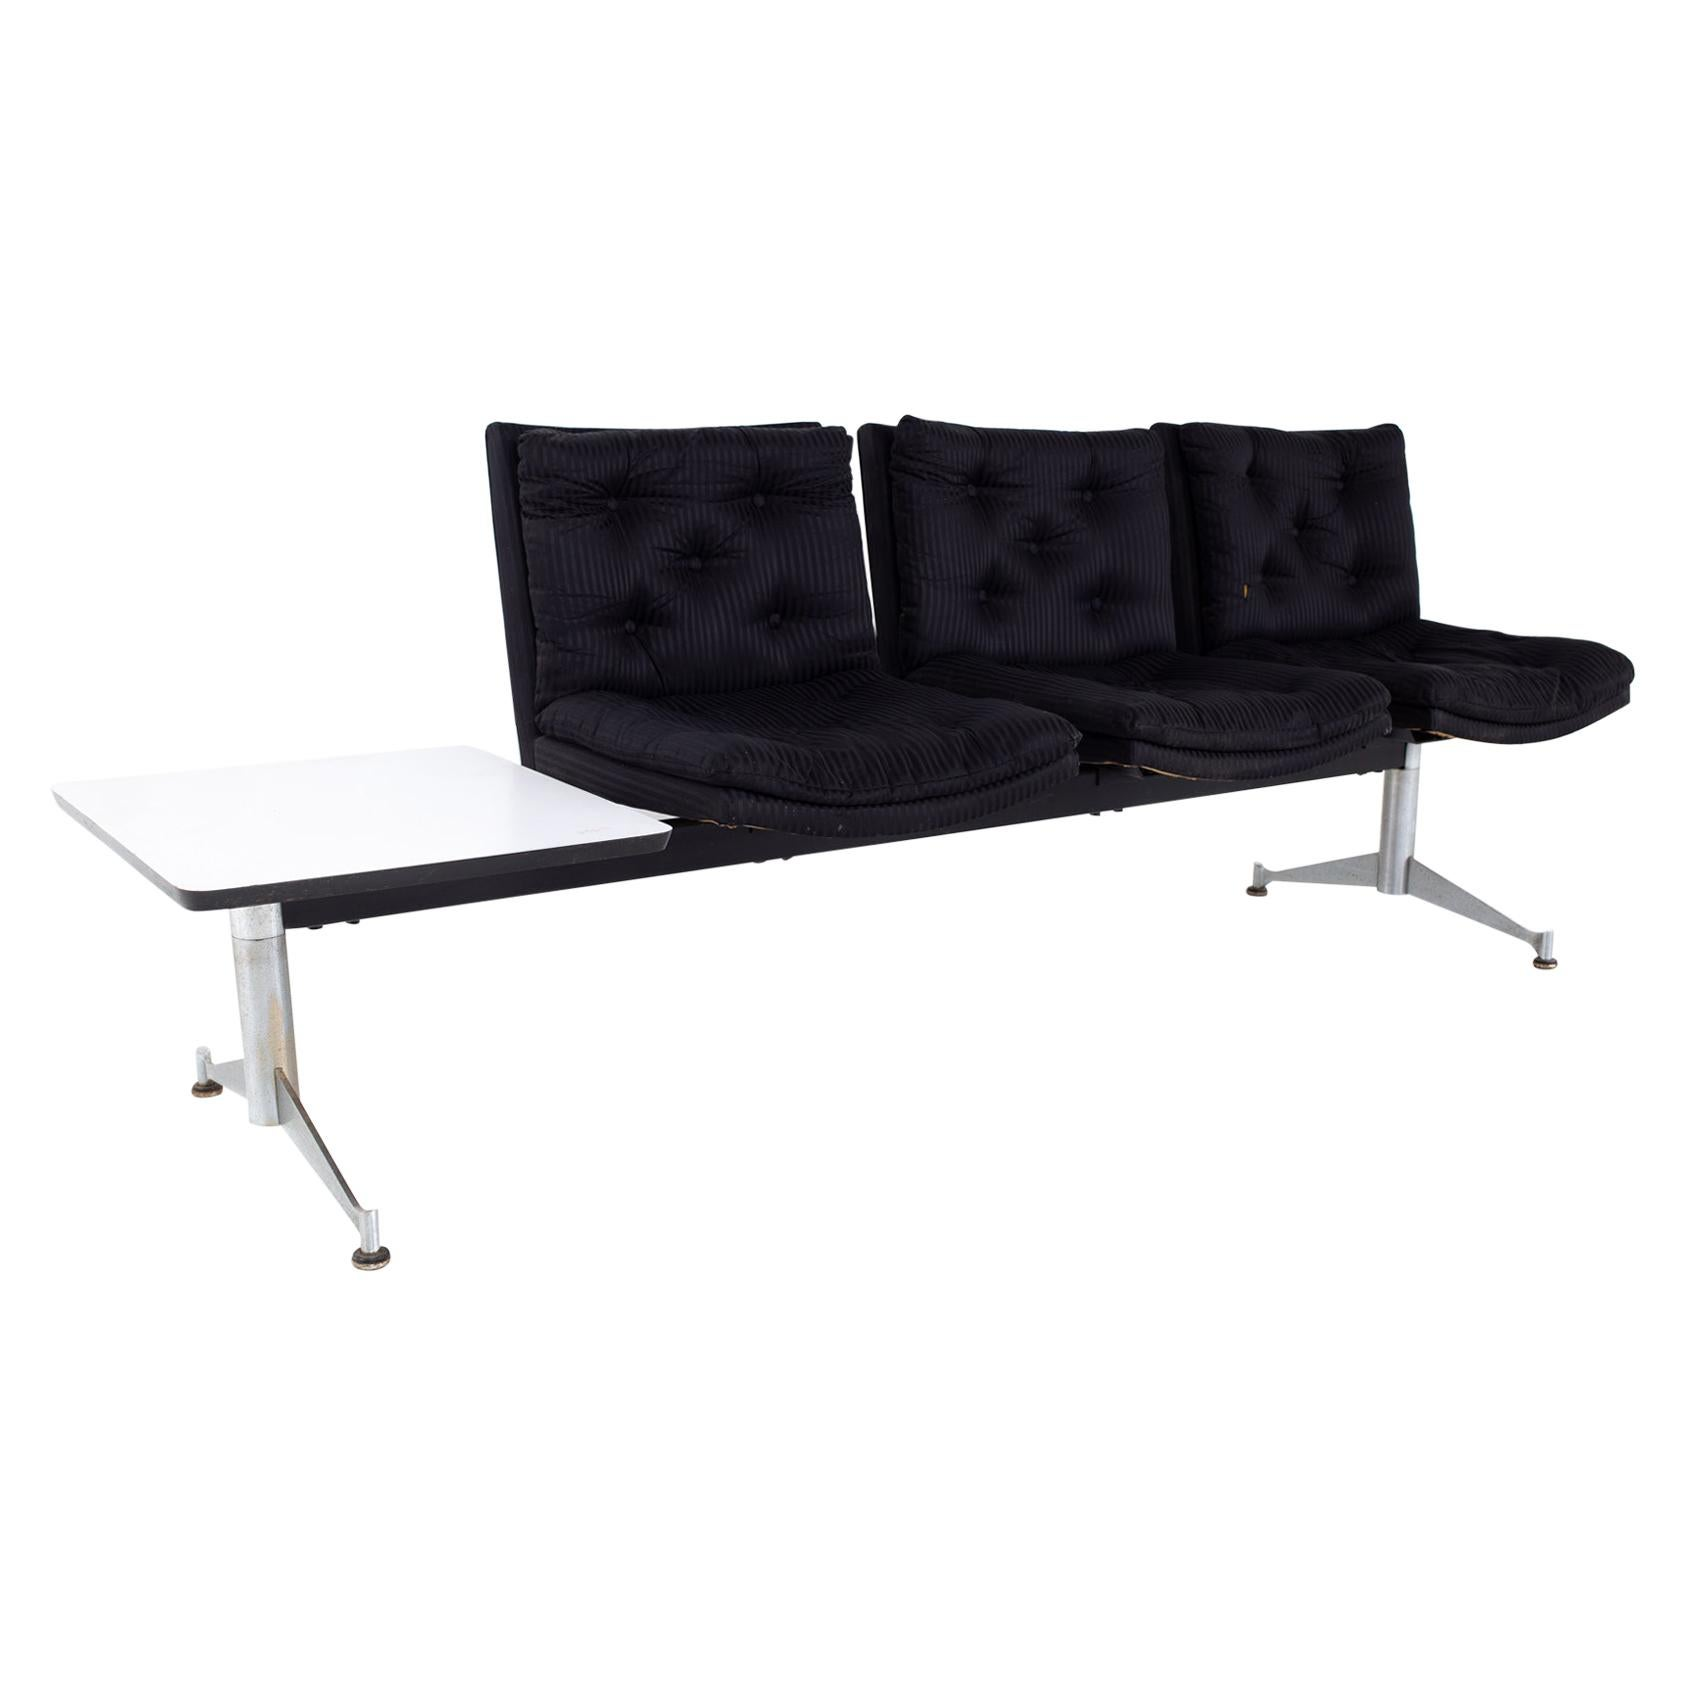 Arthur Umanoff for Madison Furniture Mid Century Modular Seated Bench